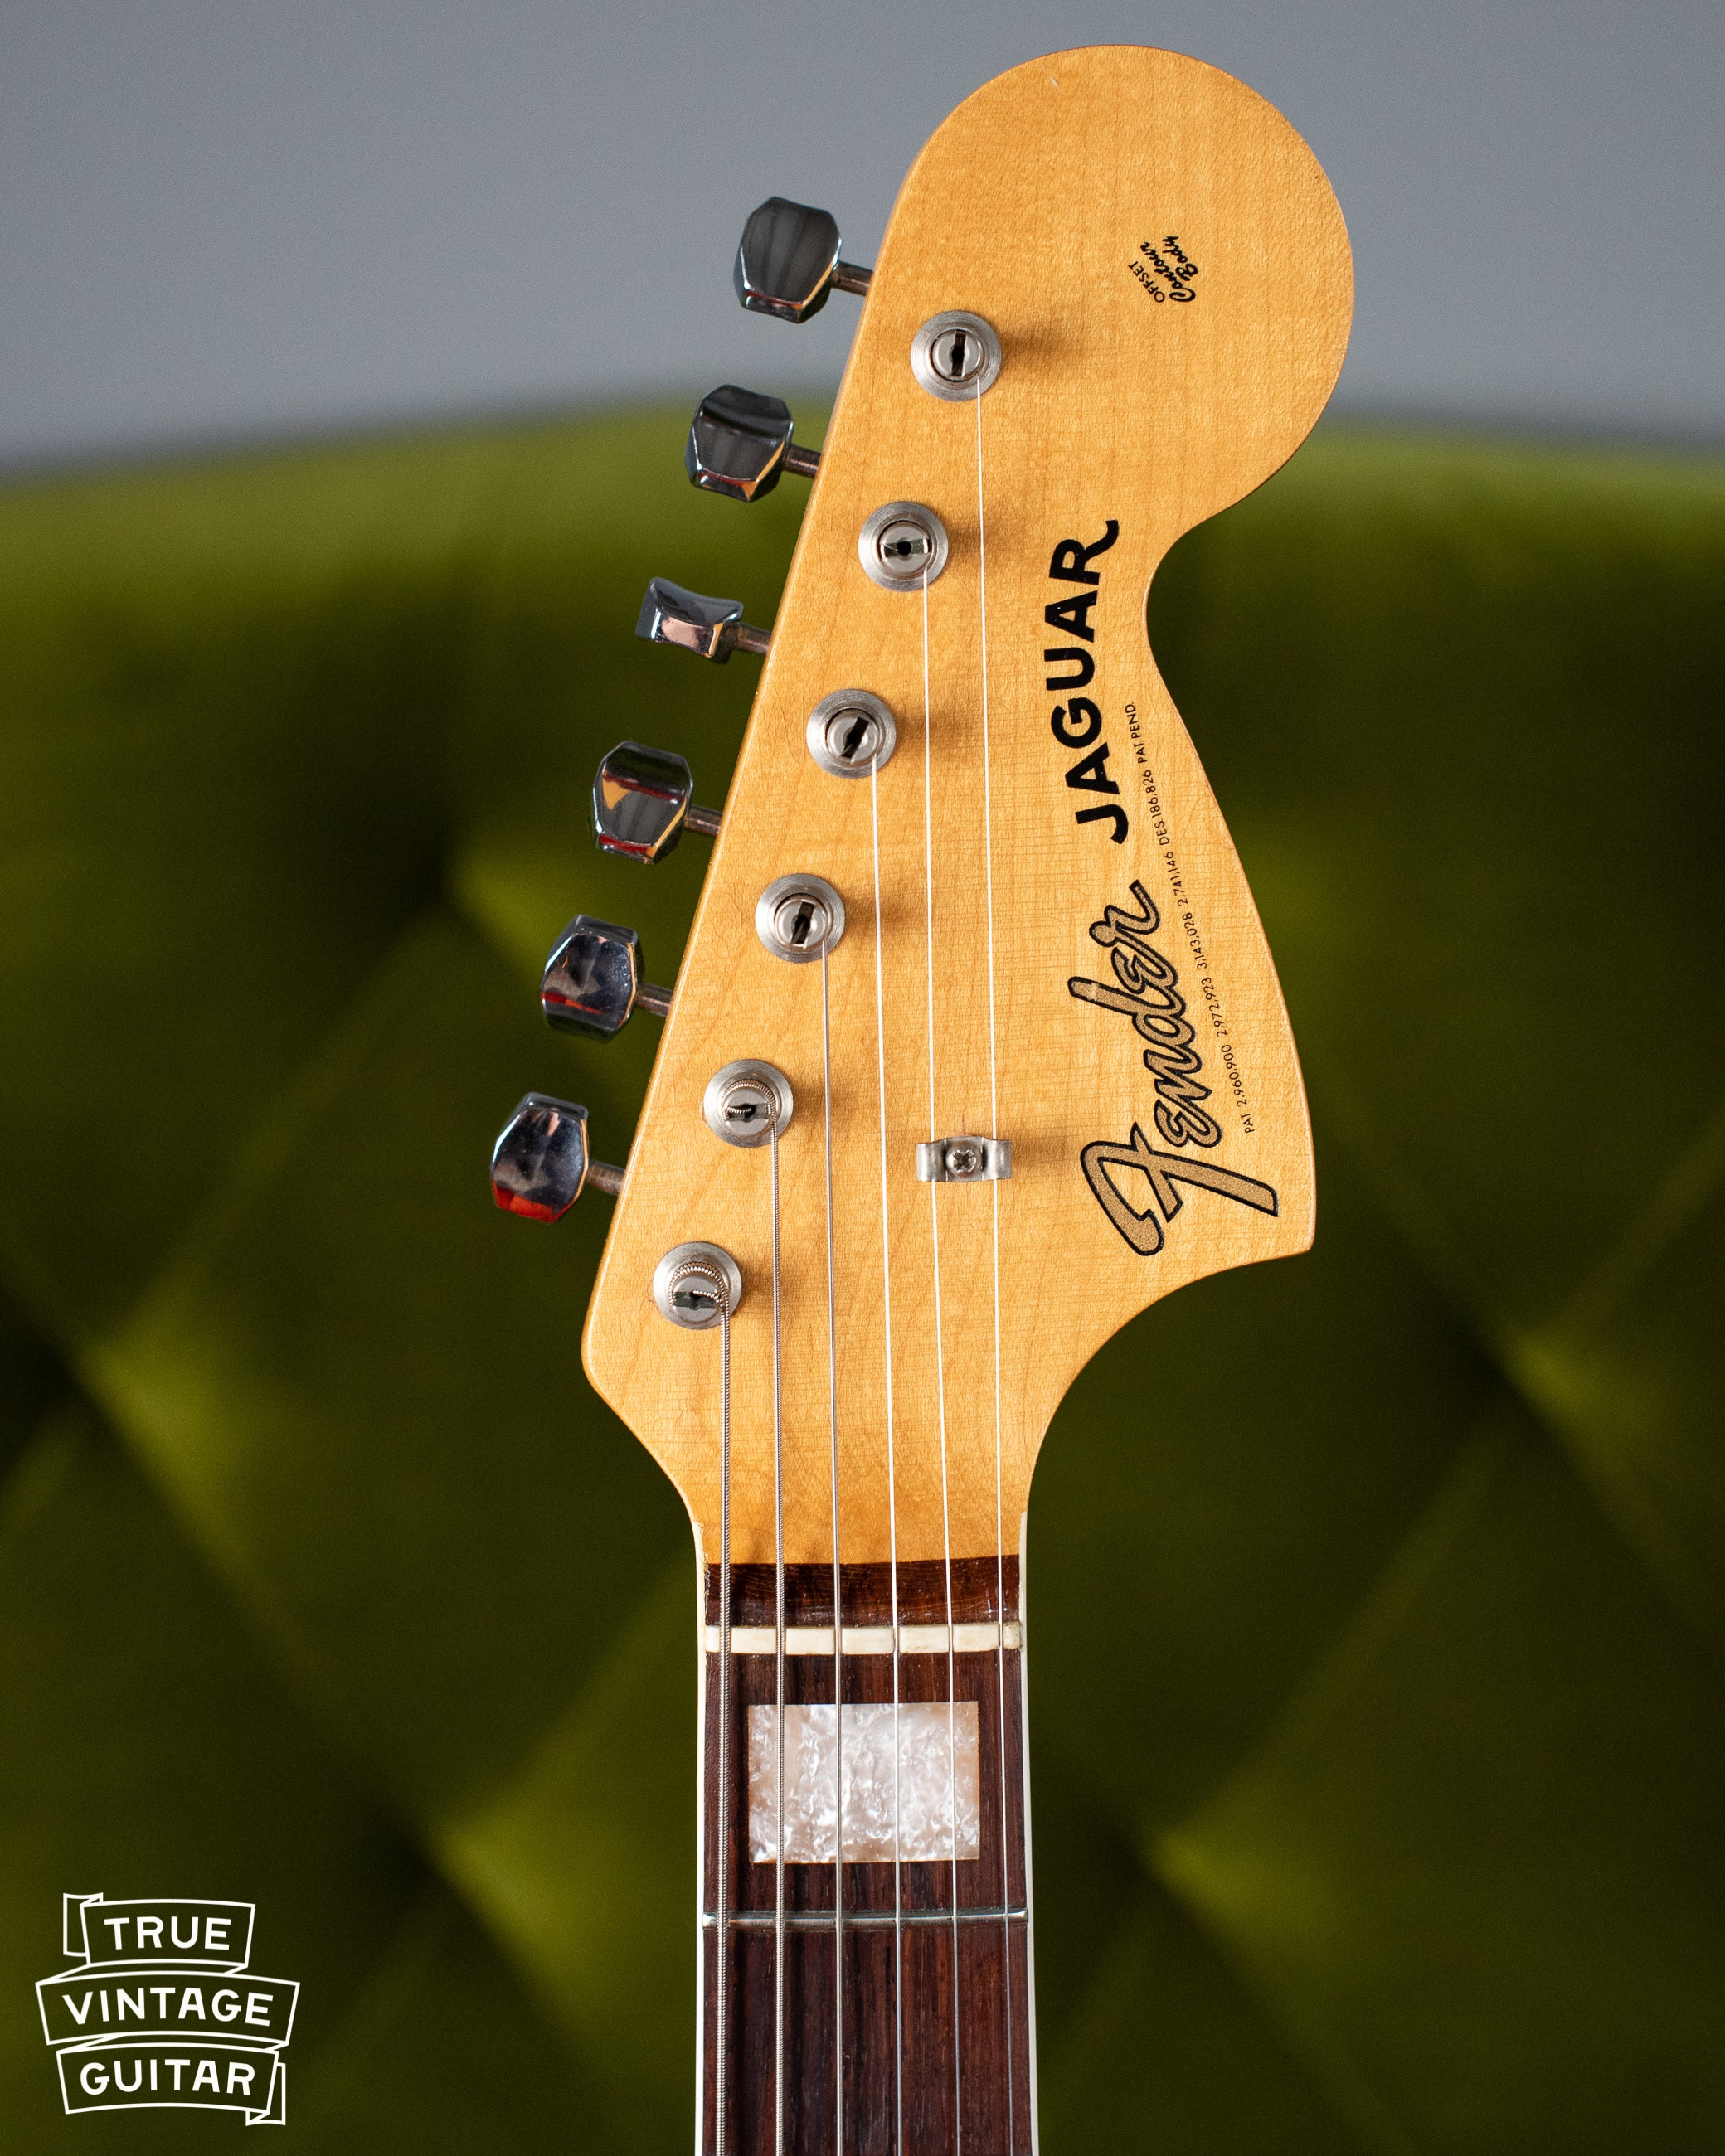 Where to sell vintage Fender guitars